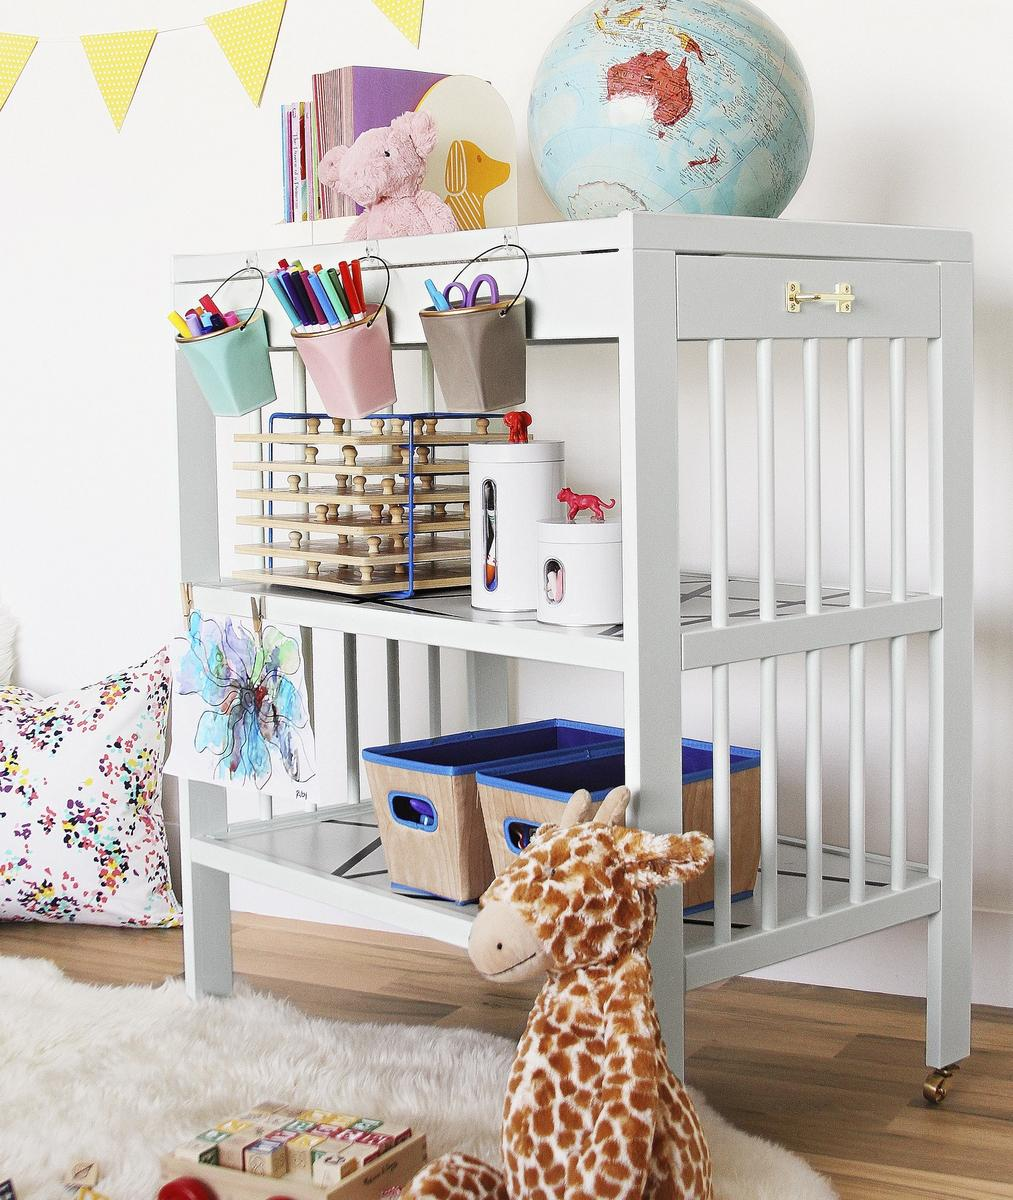 Blogger DIY Challenge: Hack the Changing Table!